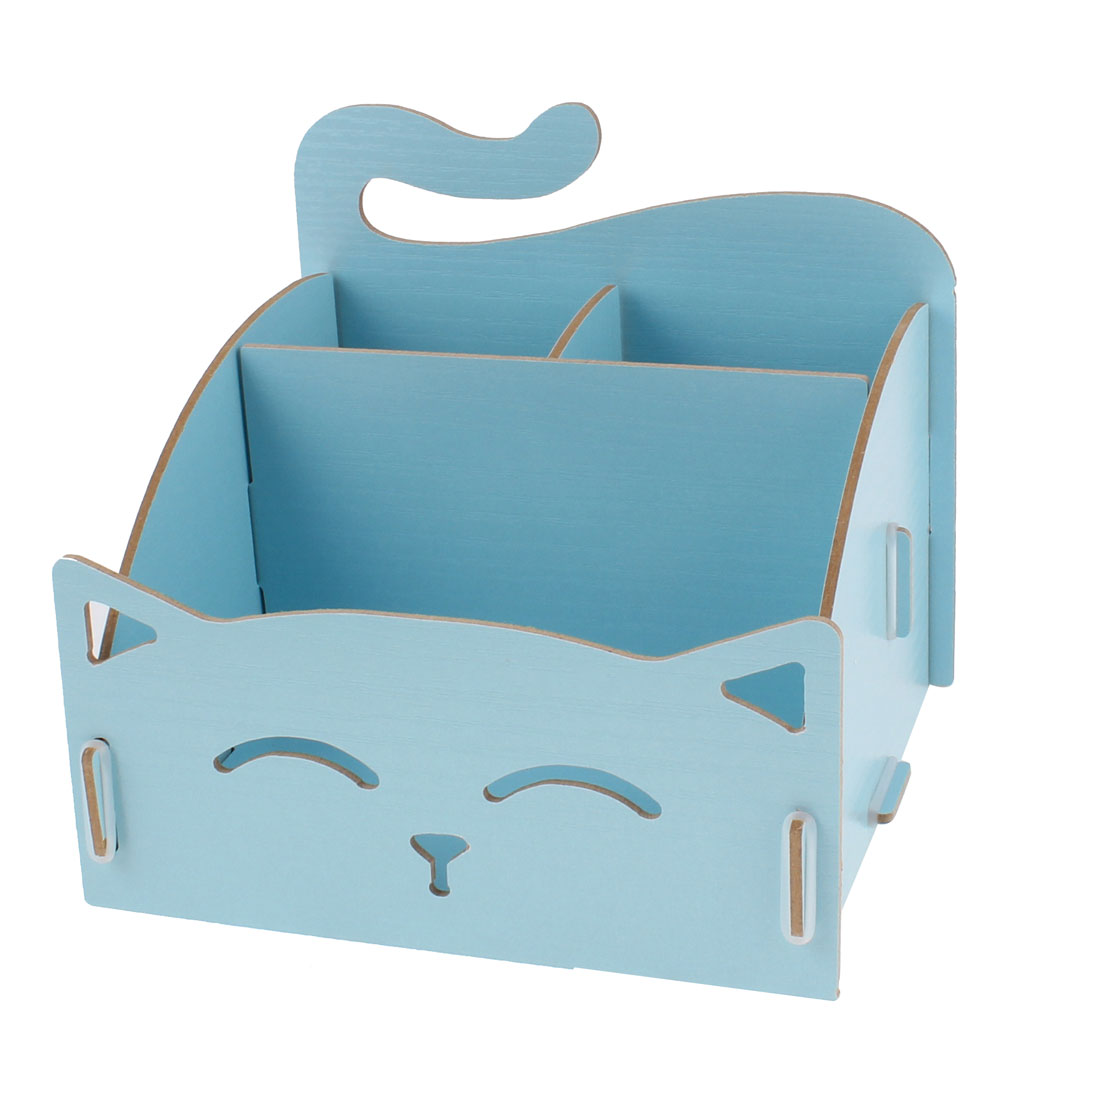 Cosmetic DIY Makeup Stationery Wooden Box Holder Storage Organizer Light Blue